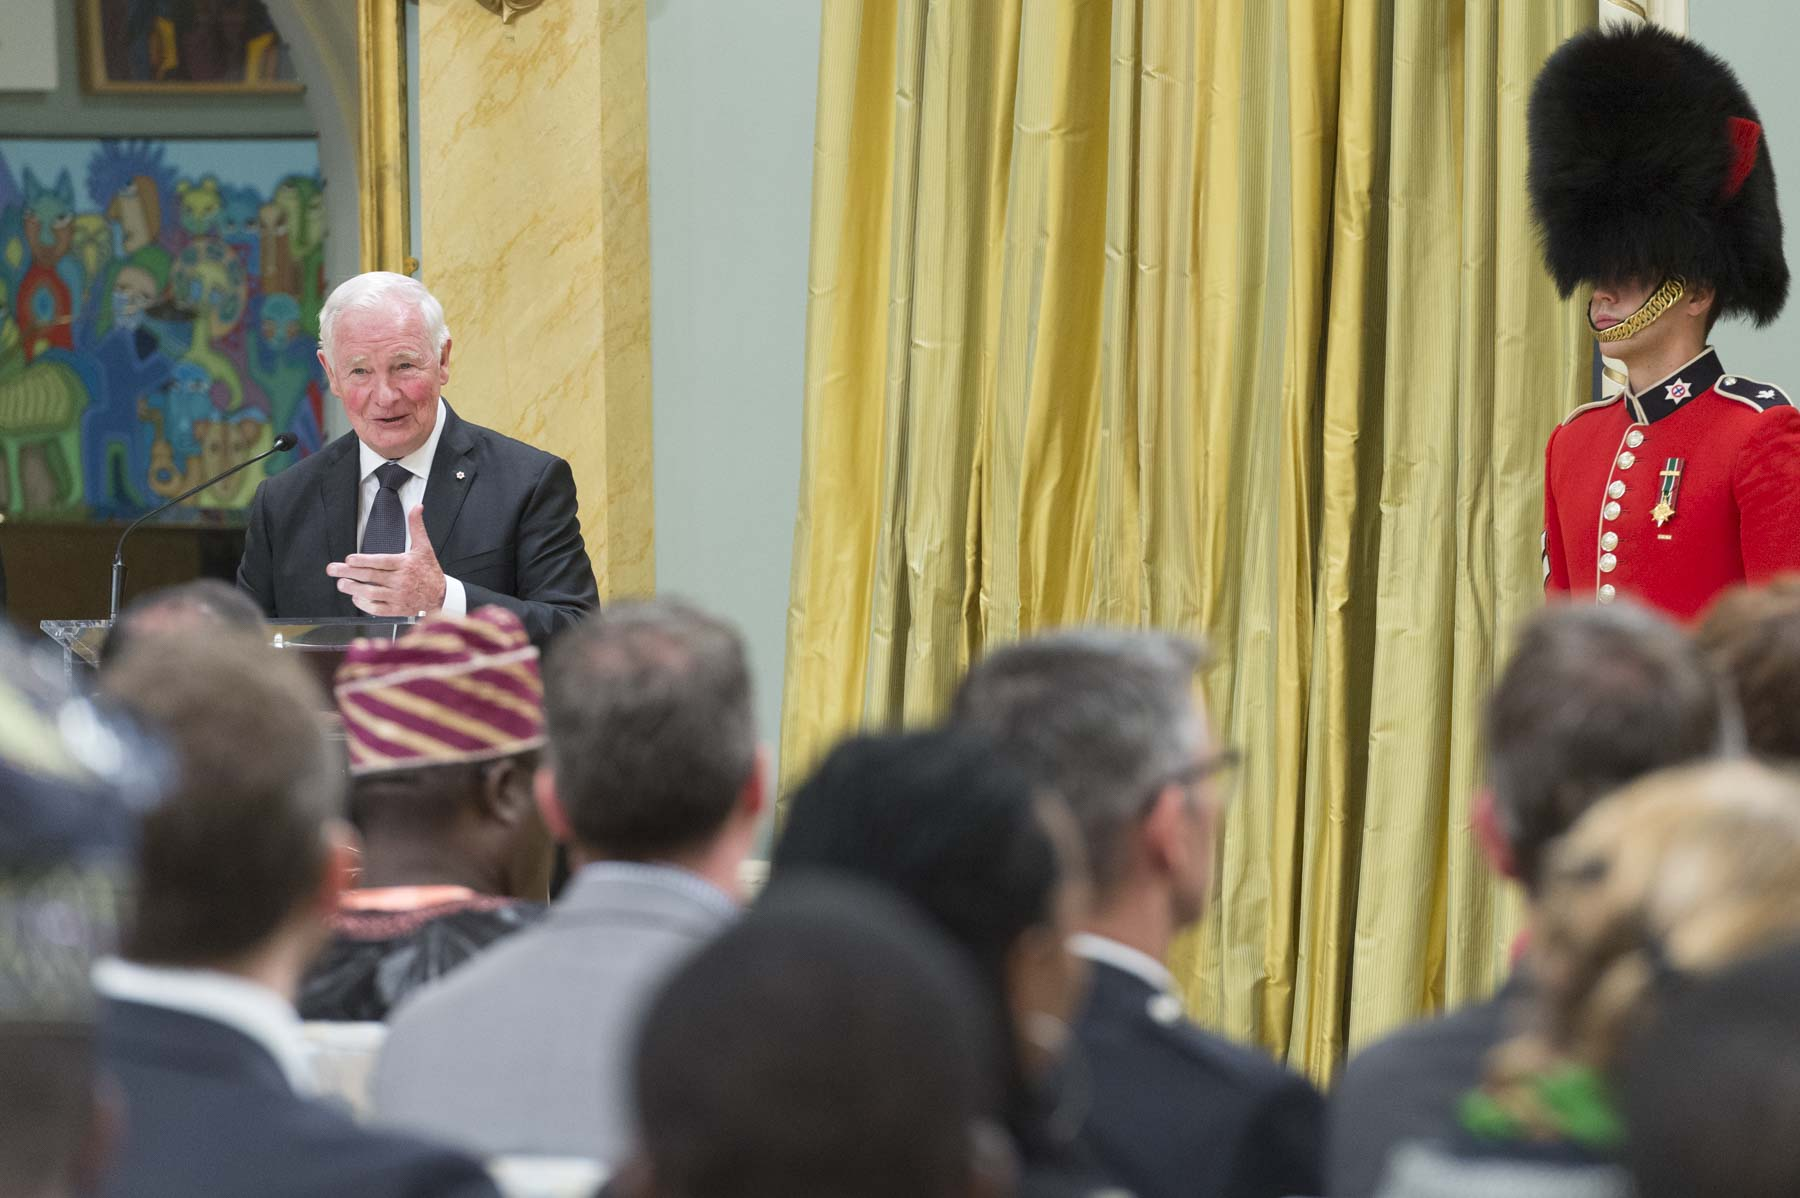 """Diplomacy is of great importance in this complex, interconnected world. At its best, diplomacy brings people together. It bridges differences. It builds on the strengths of nations, rather than dividing by weaknesses. That's the kind of diplomacy Canada seeks to engage in with the countries you represent, and I thank you all for being here,"" said the Governor General."